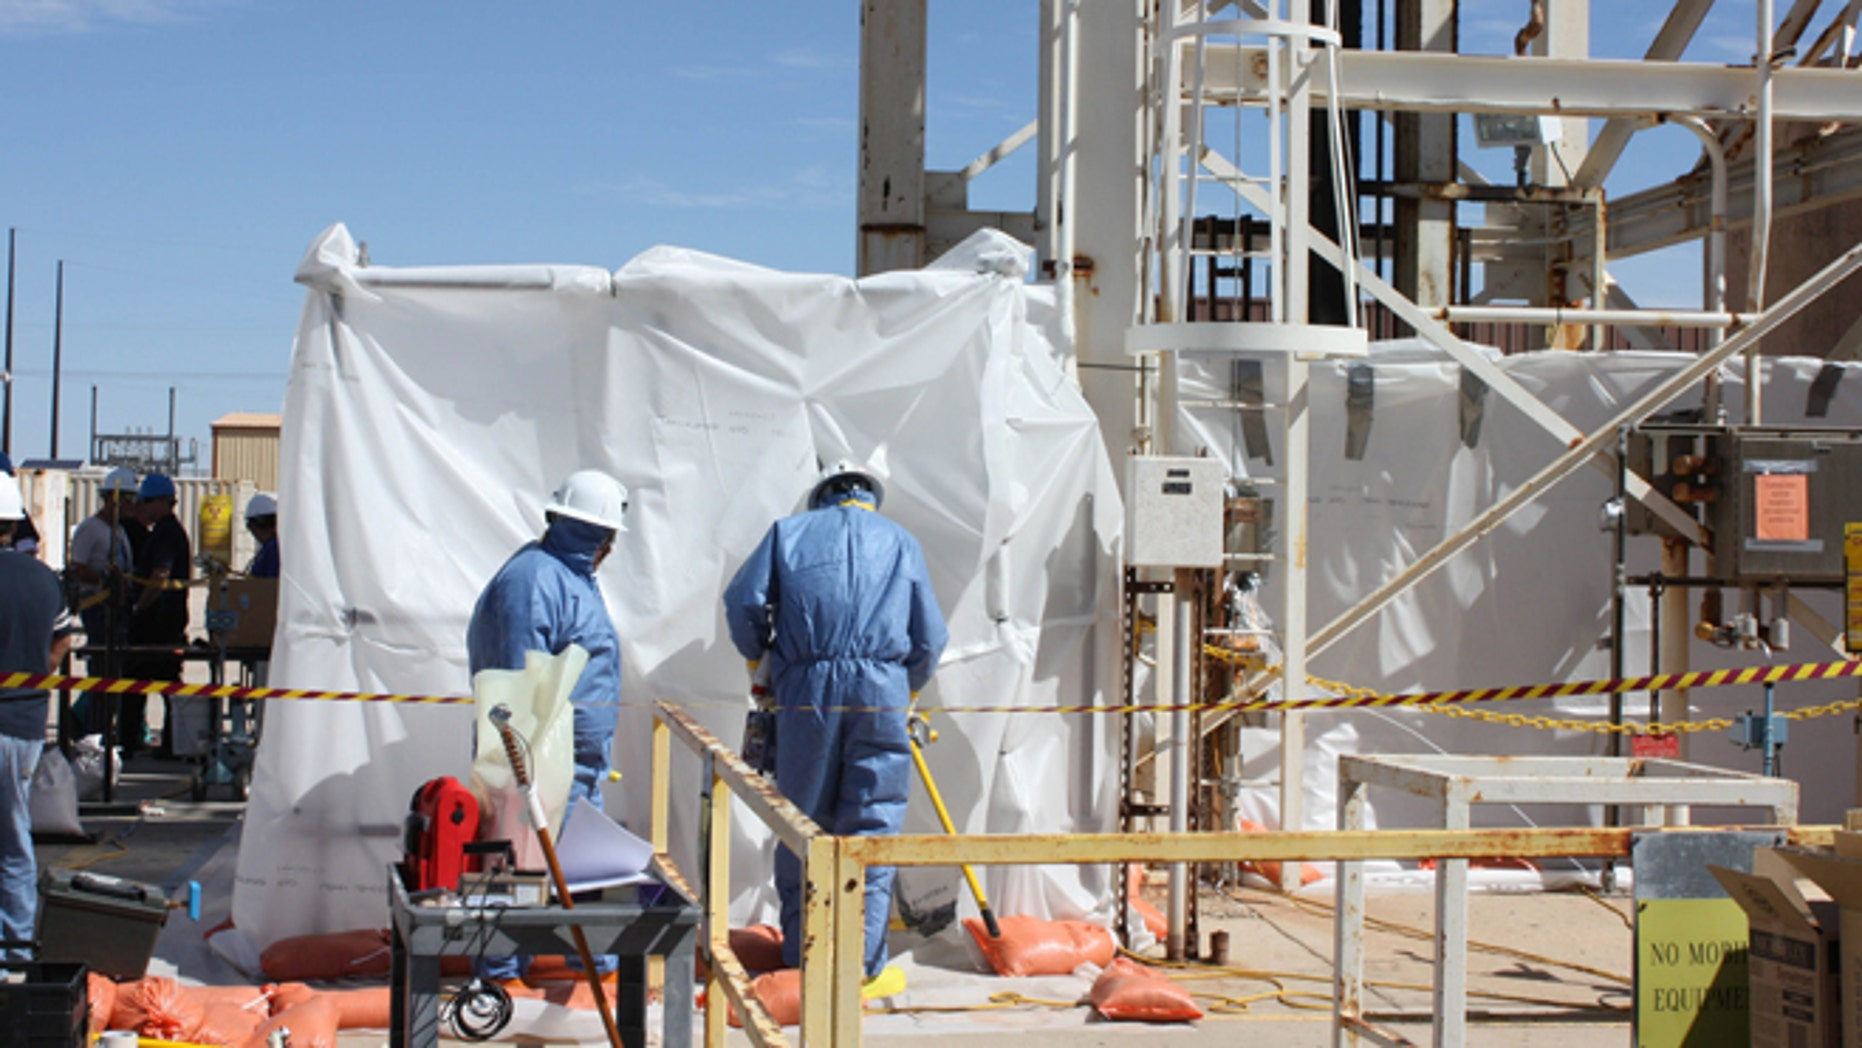 March 7, 2014: In this photo released the U.S. Department of Energy, specially-trained workers make unmanned tests inside a nuclear waste dump in Carlsbad, N.M.